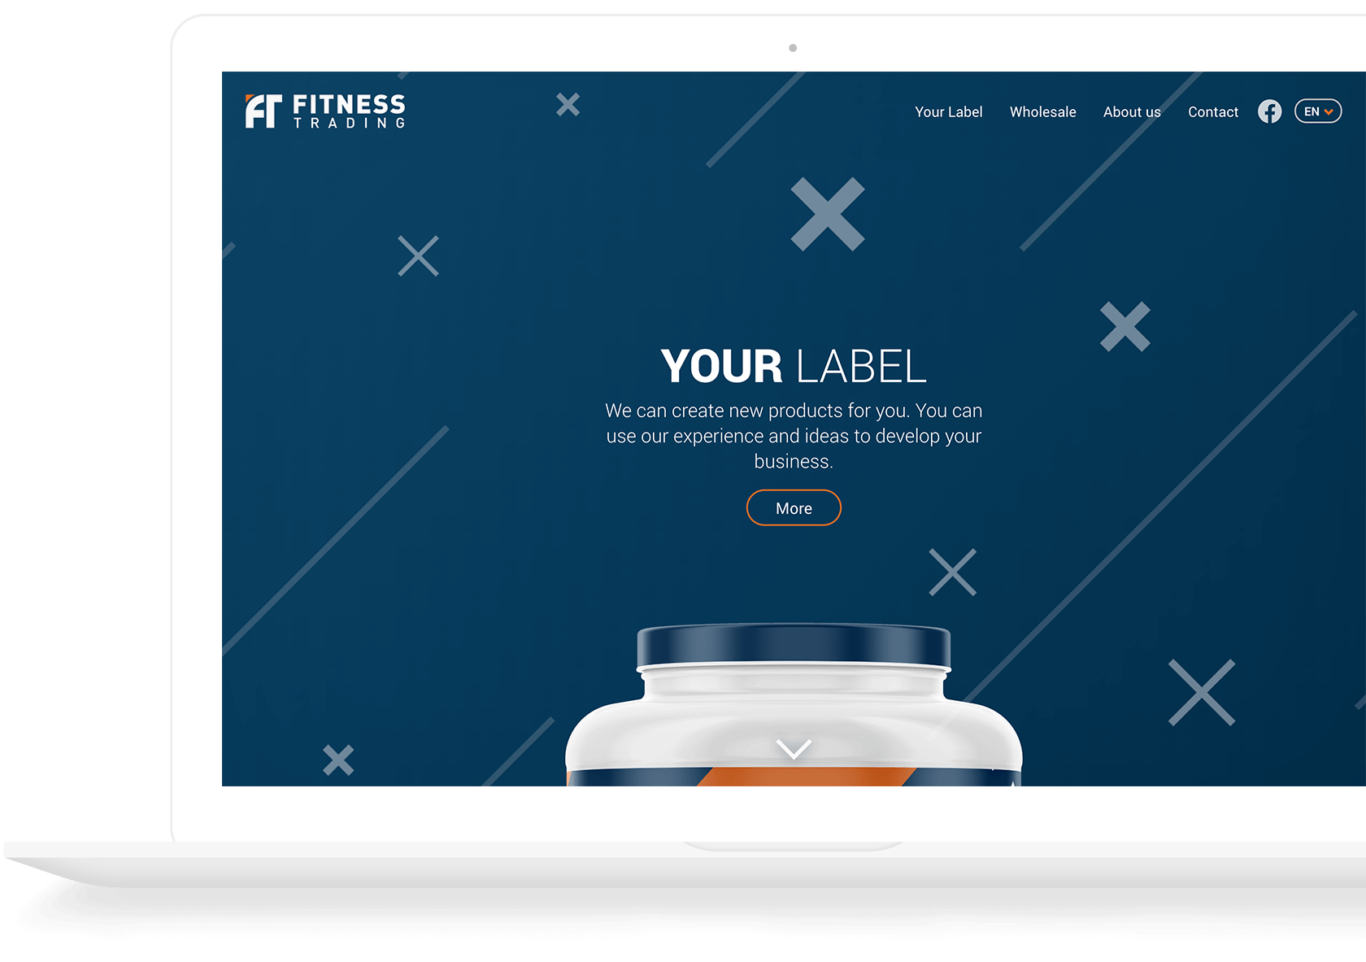 Fitness Trading